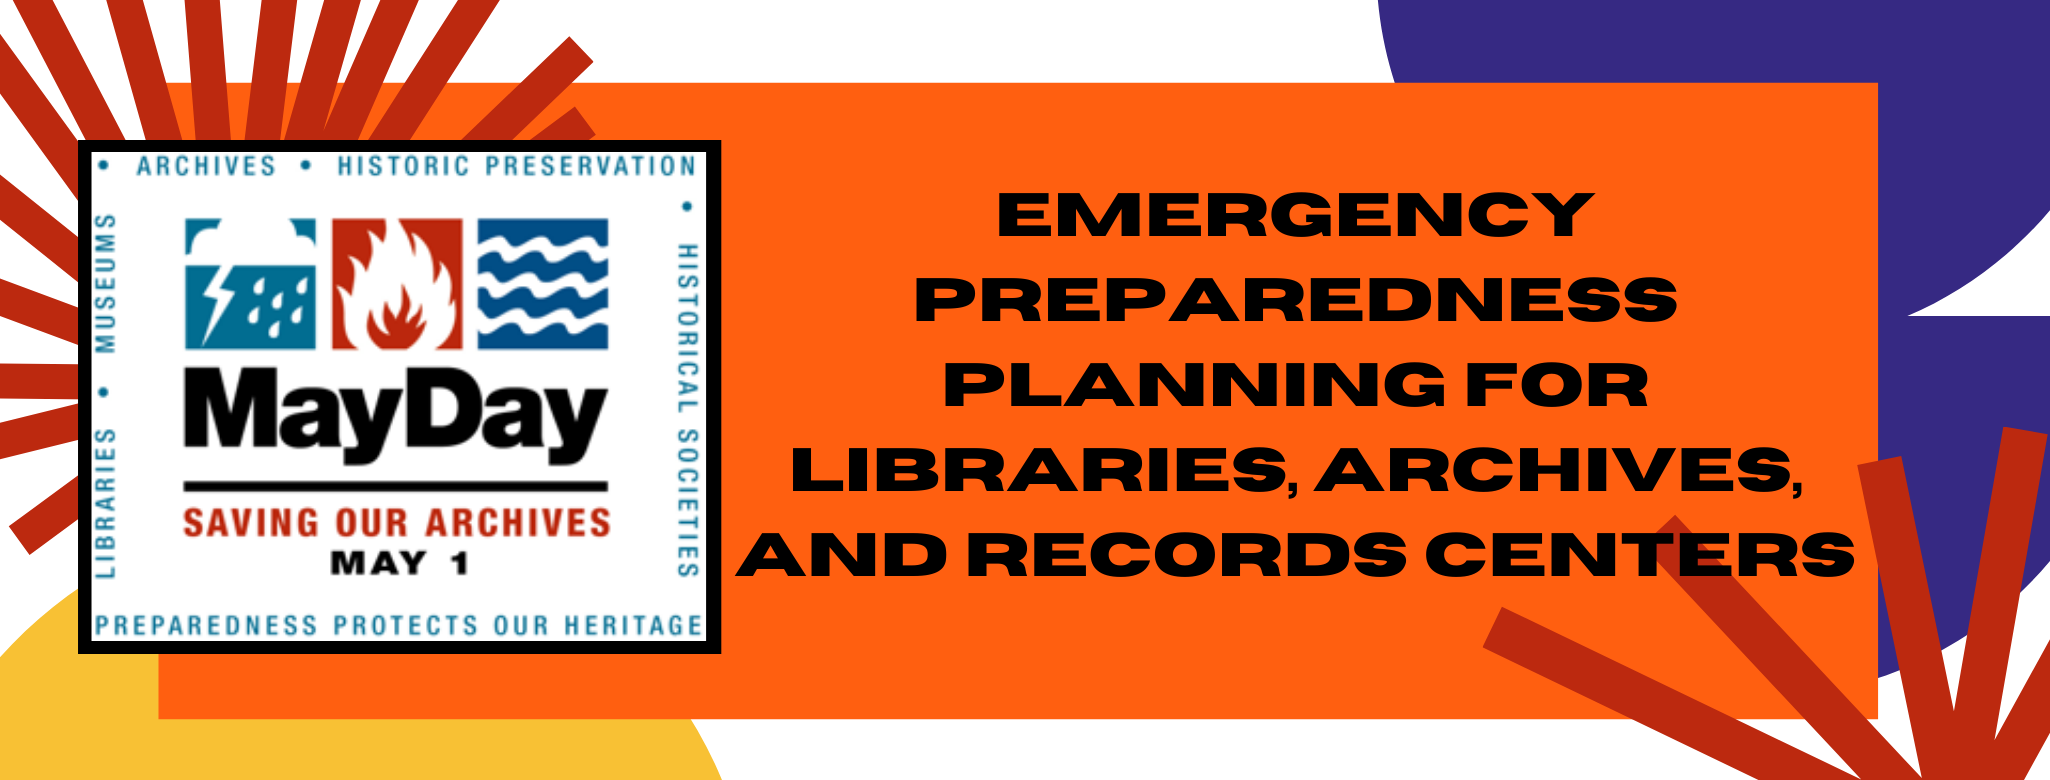 Image link to a video about Emergency Planning and Preparedness for Libraries, Archives and Records Centers